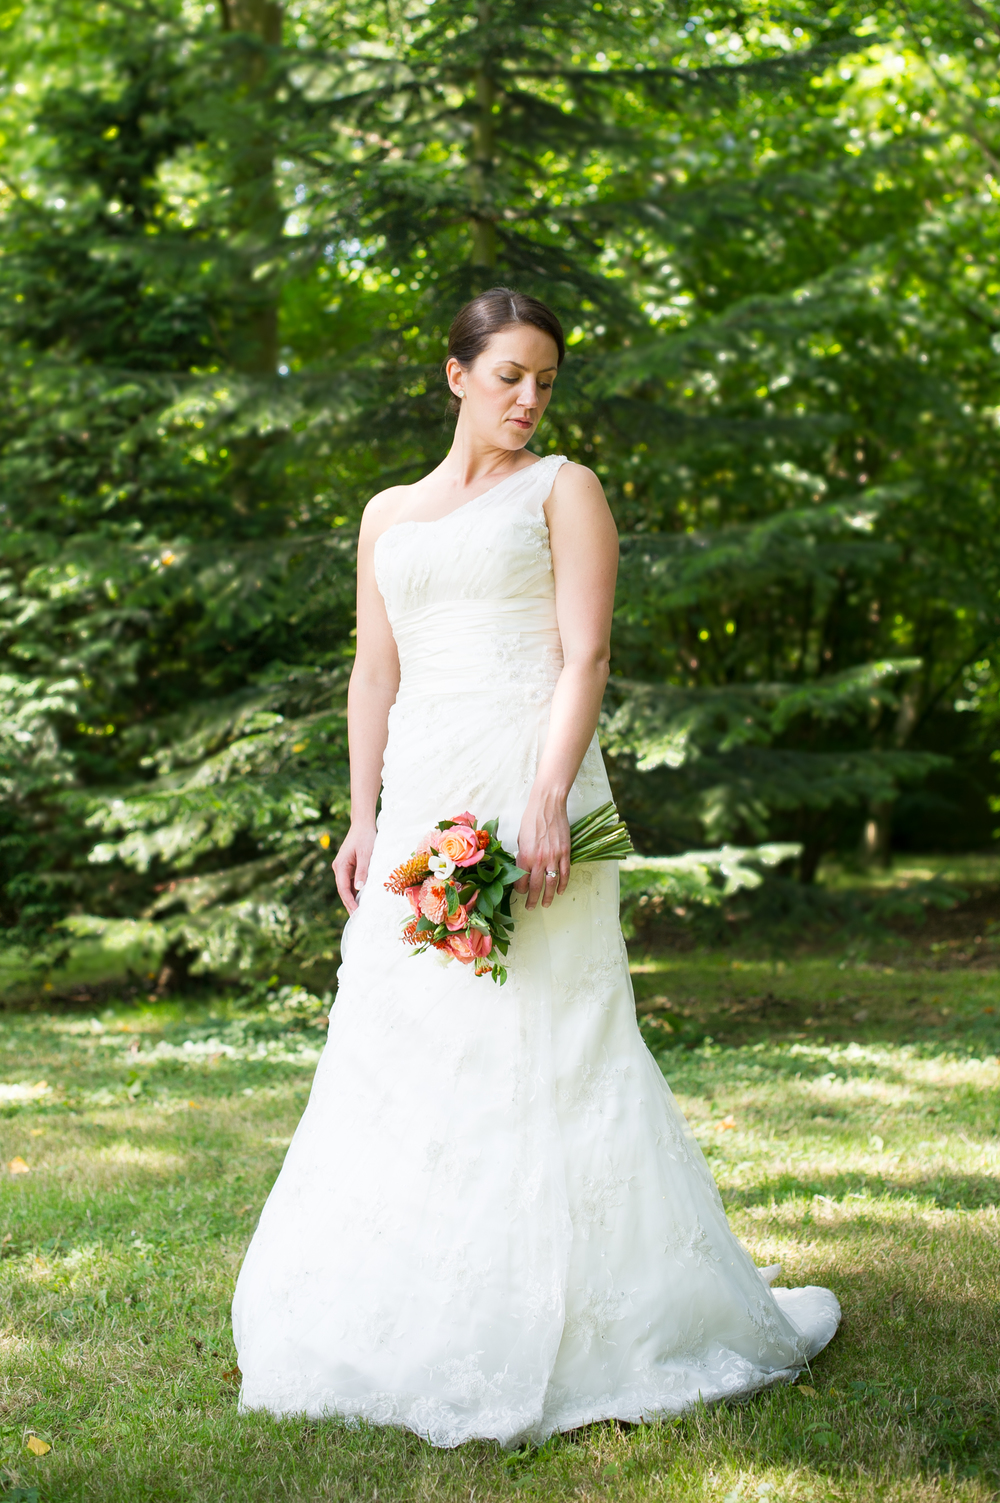 Sarah_&_Matt_Wedding_316.jpg